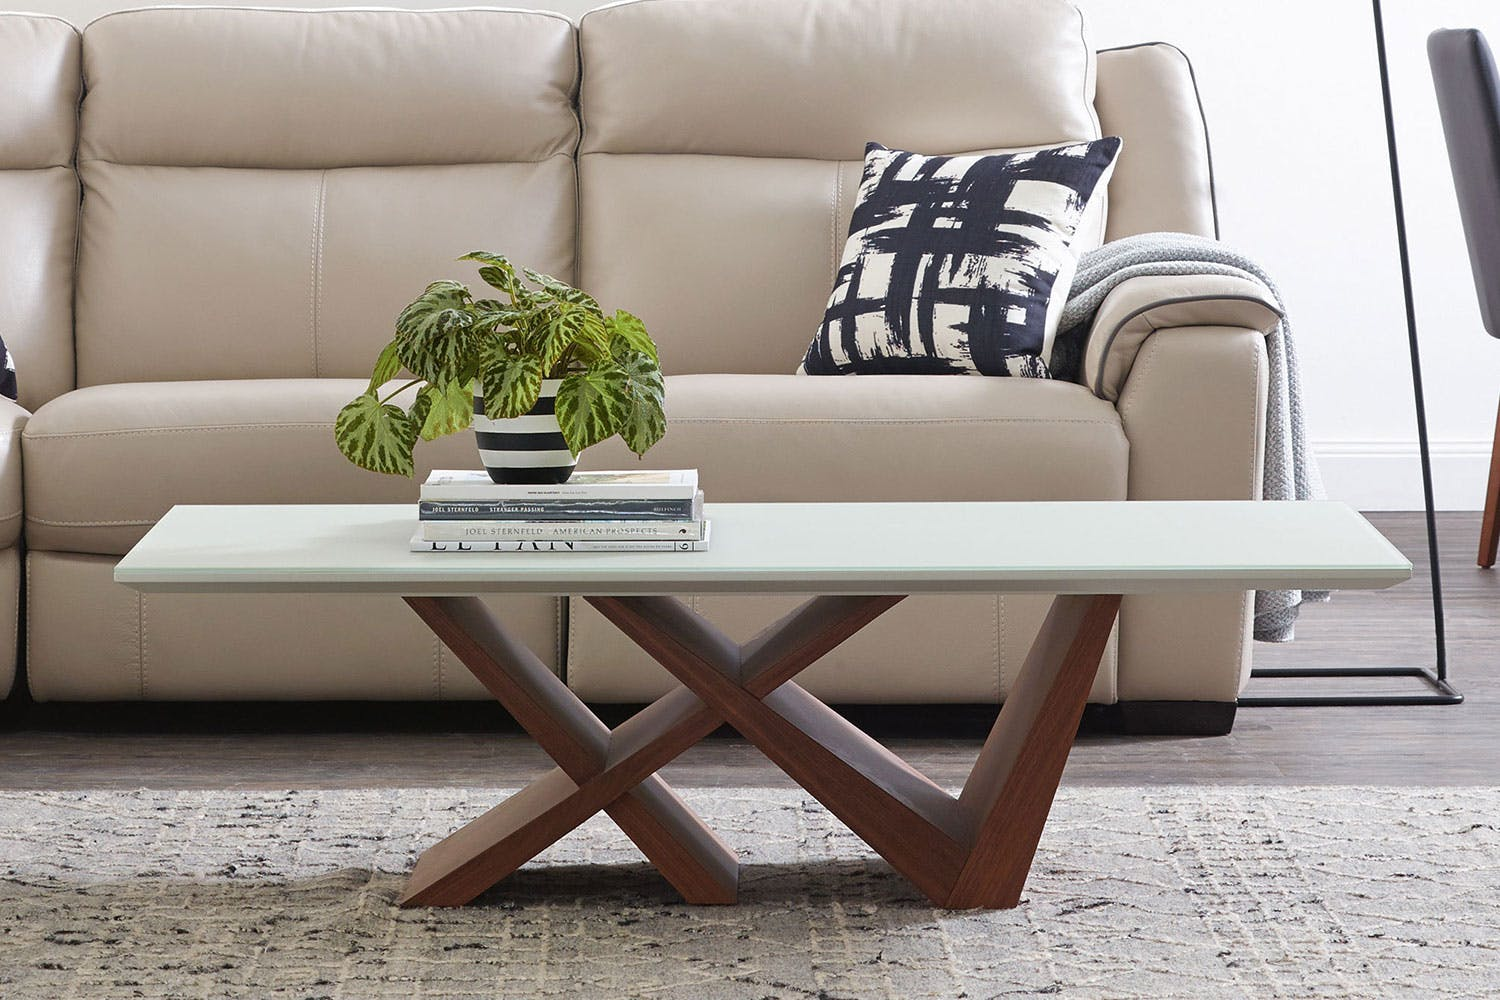 Moderna coffee table by insato furniture harvey norman new zealand